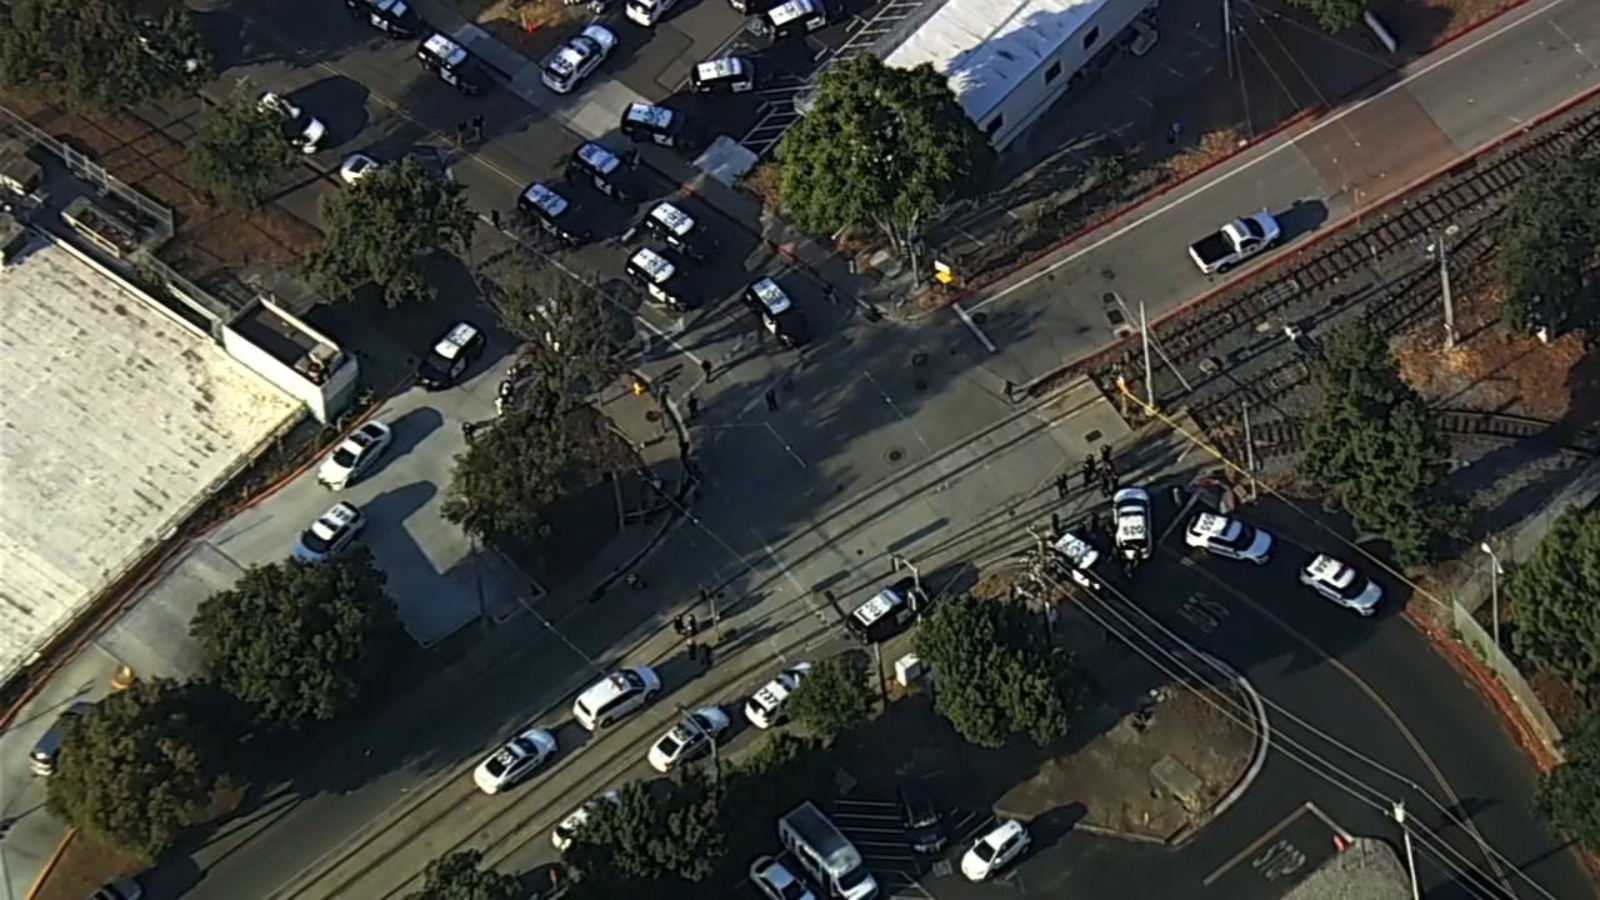 LIVE: Multiple injuries in 'active scene' shooting in San Jose, Calif., officials say